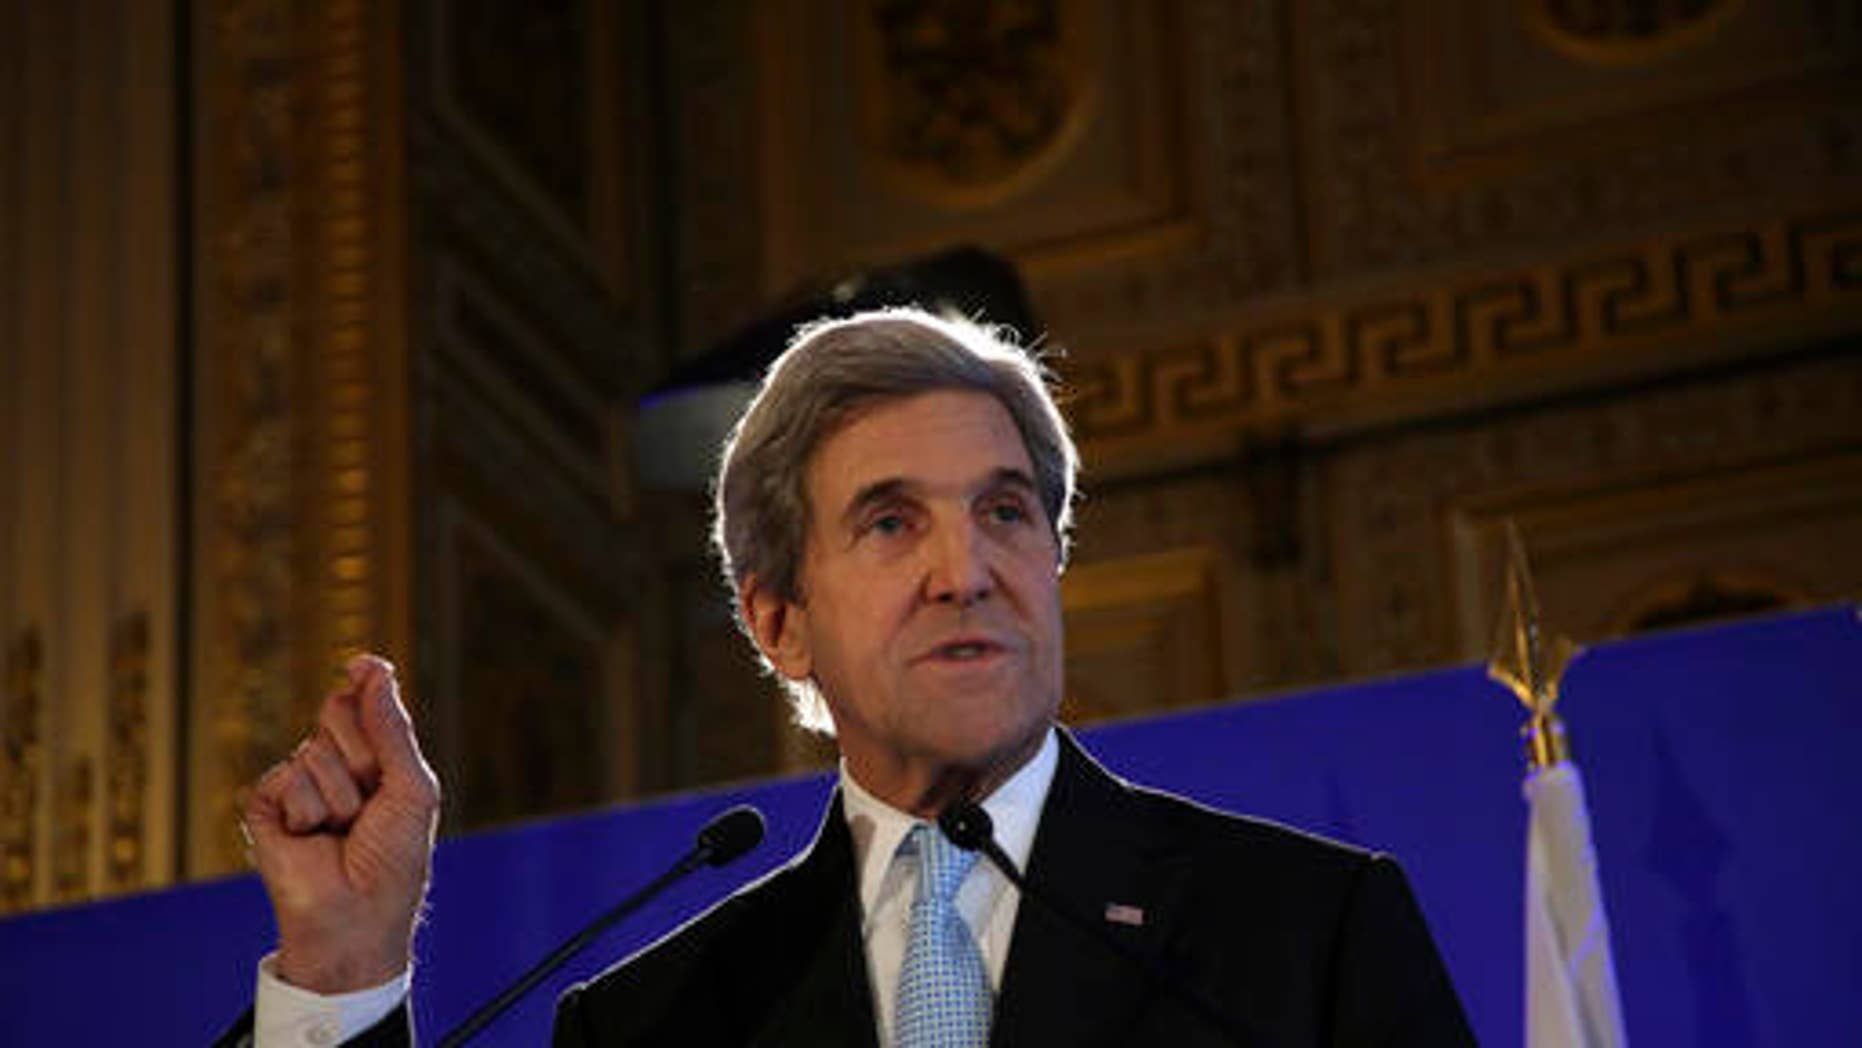 U.S. Secretary of State John Kerry gives a press conference after a meeting on Syria, in Paris, Saturday, Dec. 10, 2016. Leading diplomats are in Paris in an effort to find solutions for the conflict in Syria.  (AP Photo/Thibault Camus)